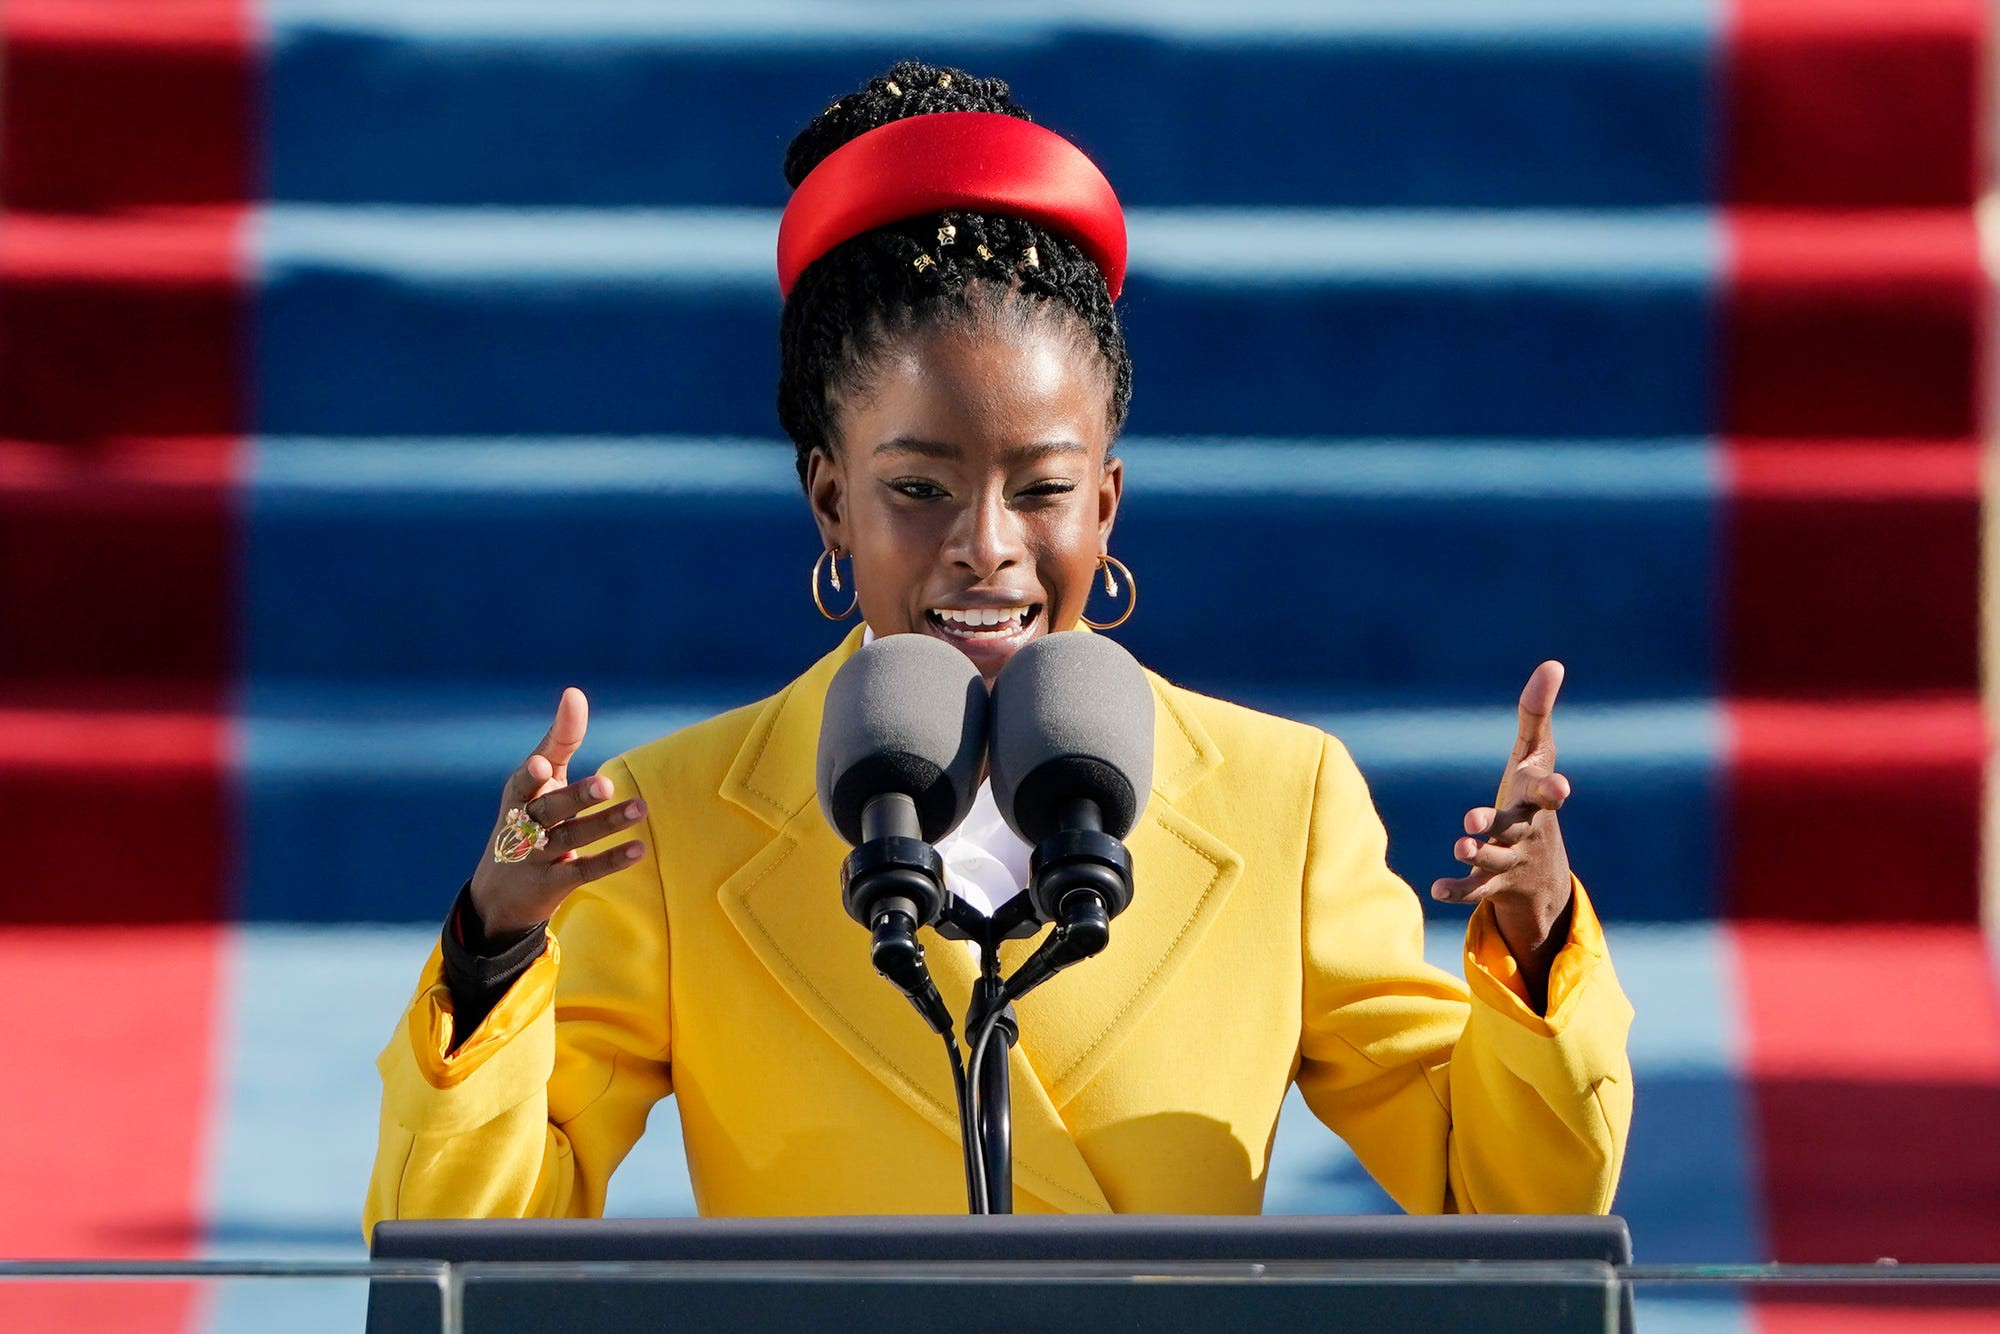 American poet Amanda Gorman reads a poem during the 59th Presidential Inauguration at the US Capitol.